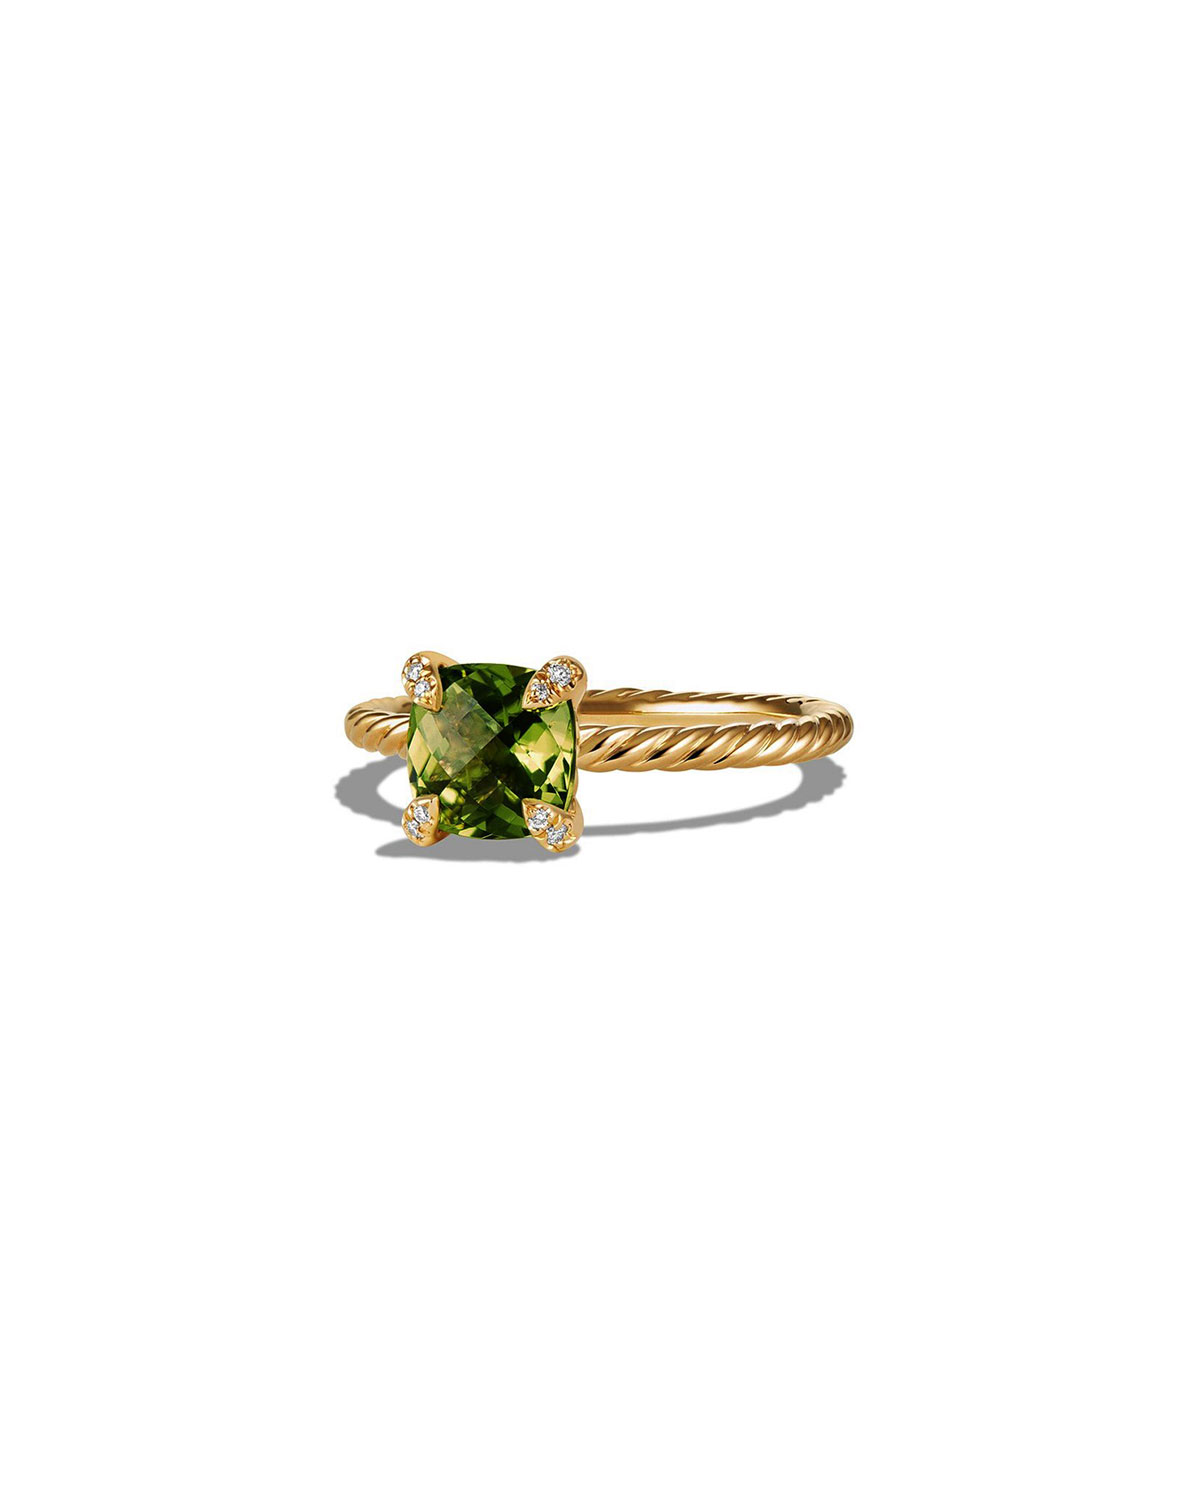 David Yurman Petite Chatelaine Pave Ring in 18K Gold with Peridot, Size 7